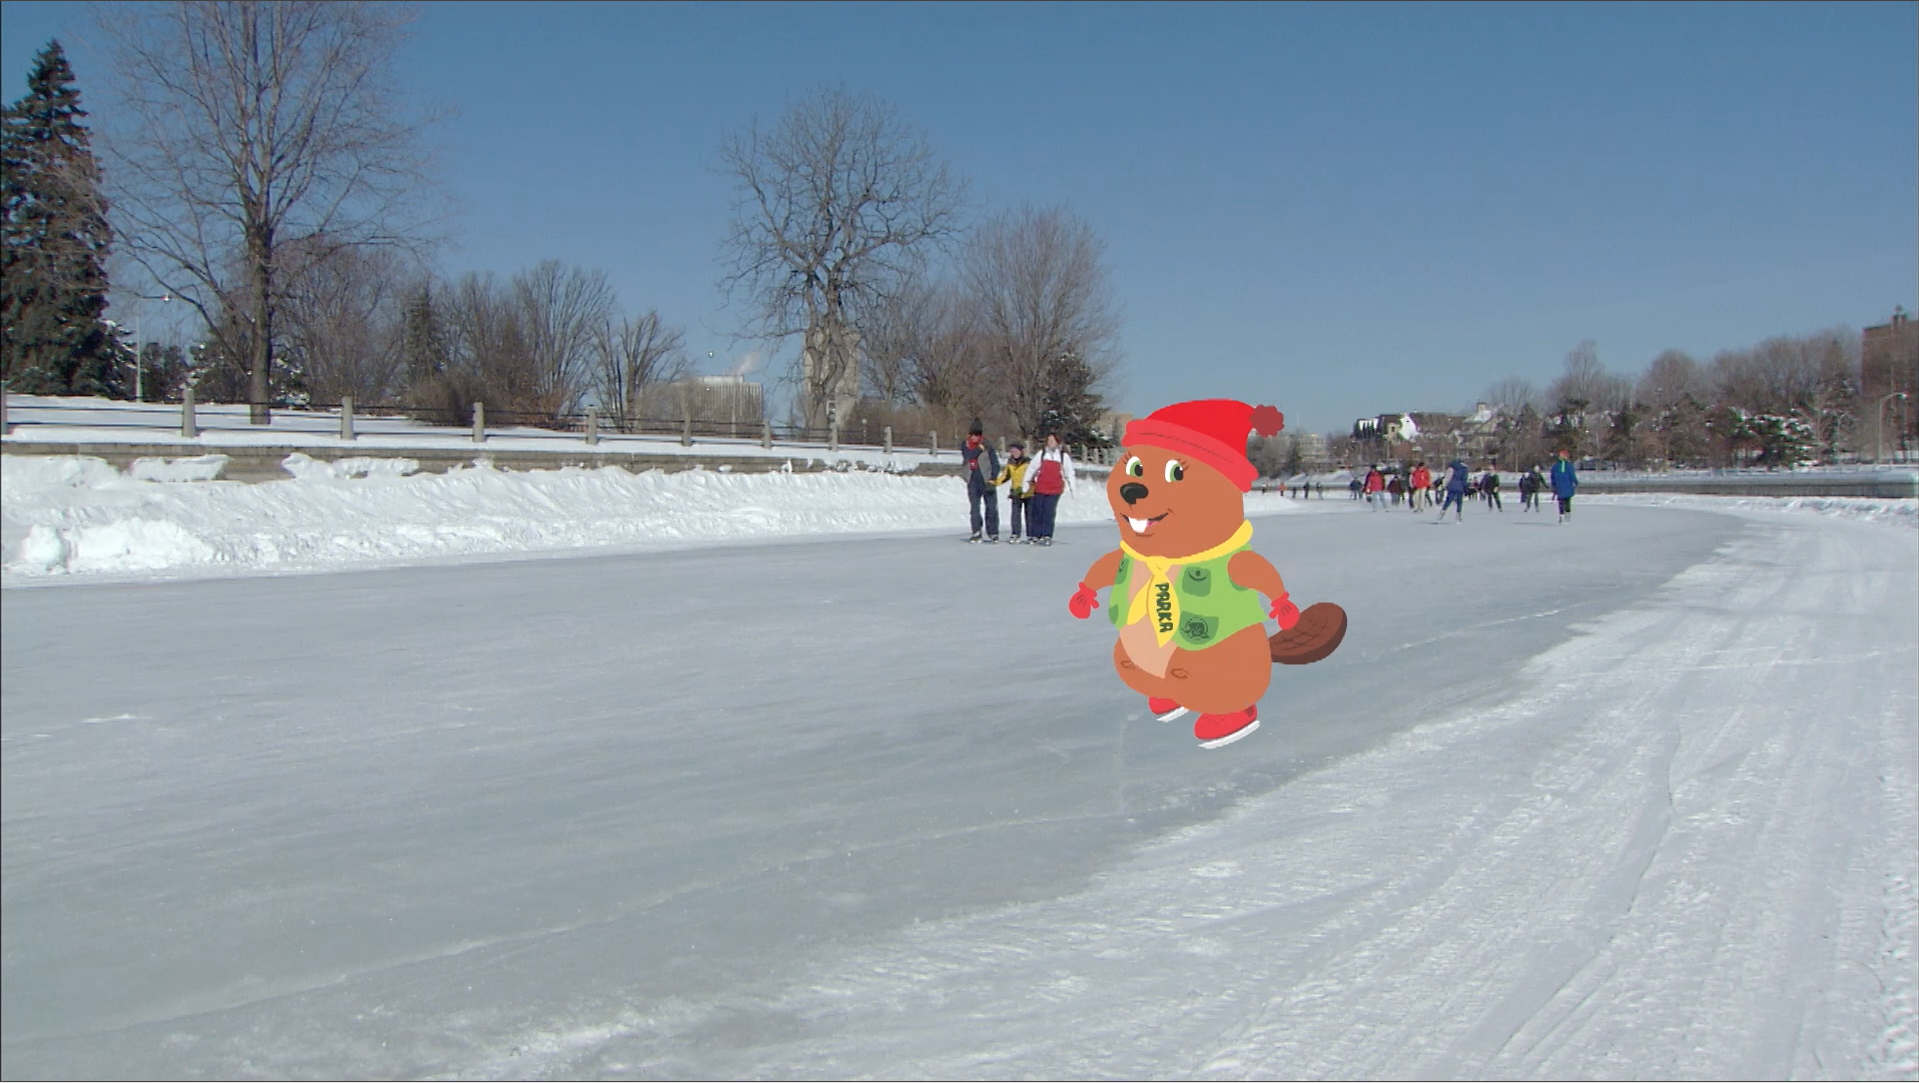 Parka goes skating on a frozen canal and imagines all the things she can do when it's warmer.